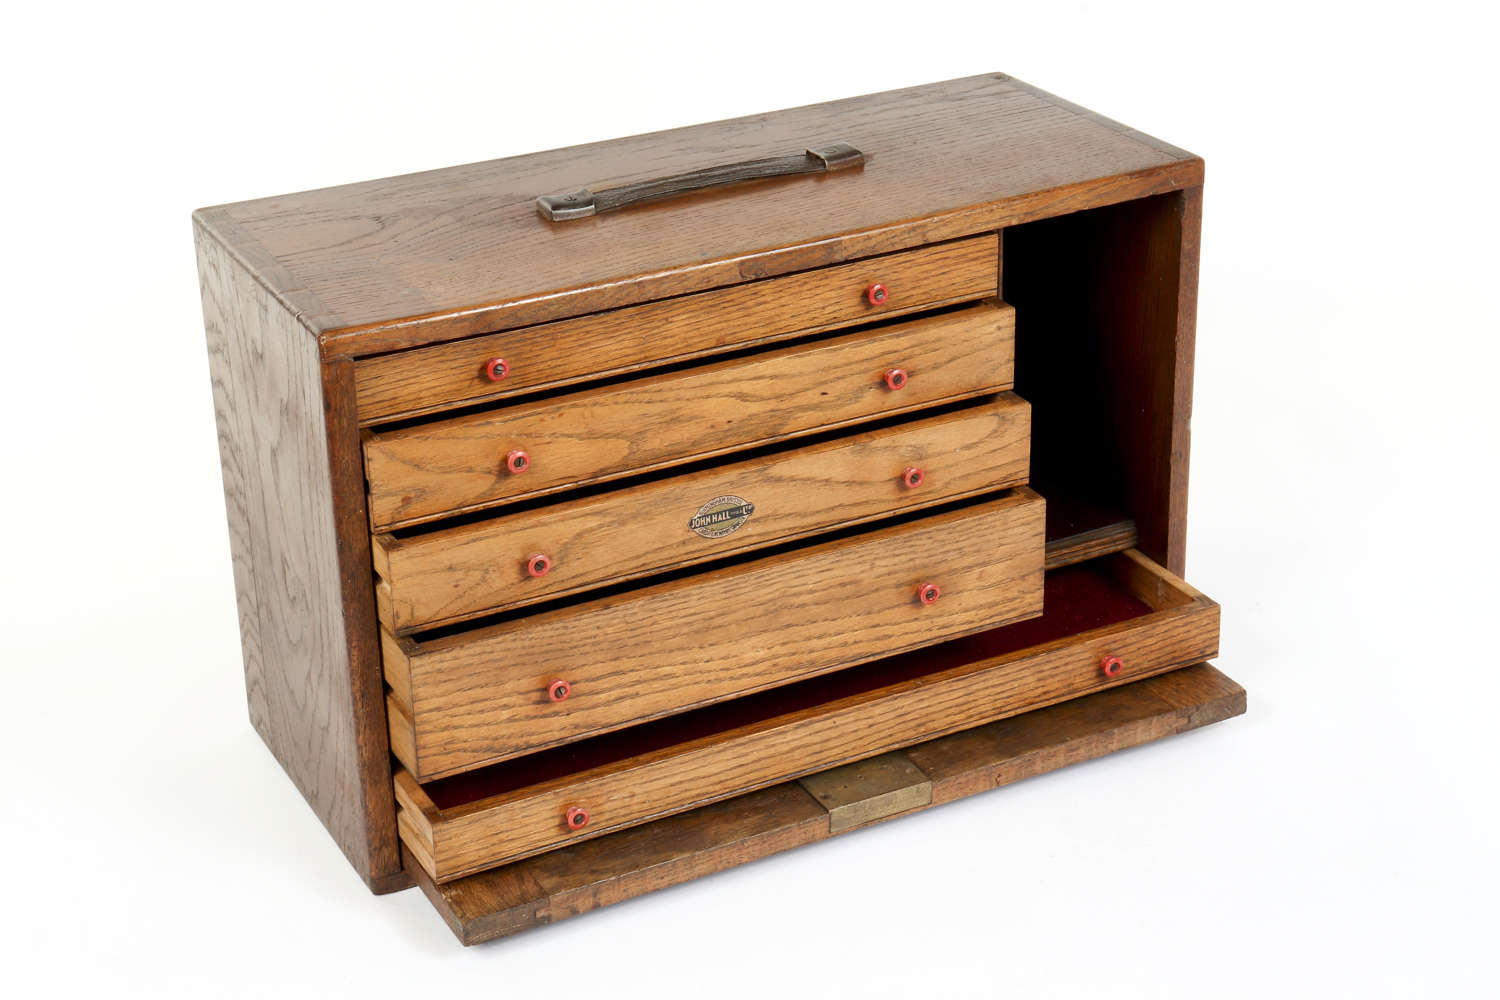 Vintage engineer's chest of drawers by John Hall Tools Ltd